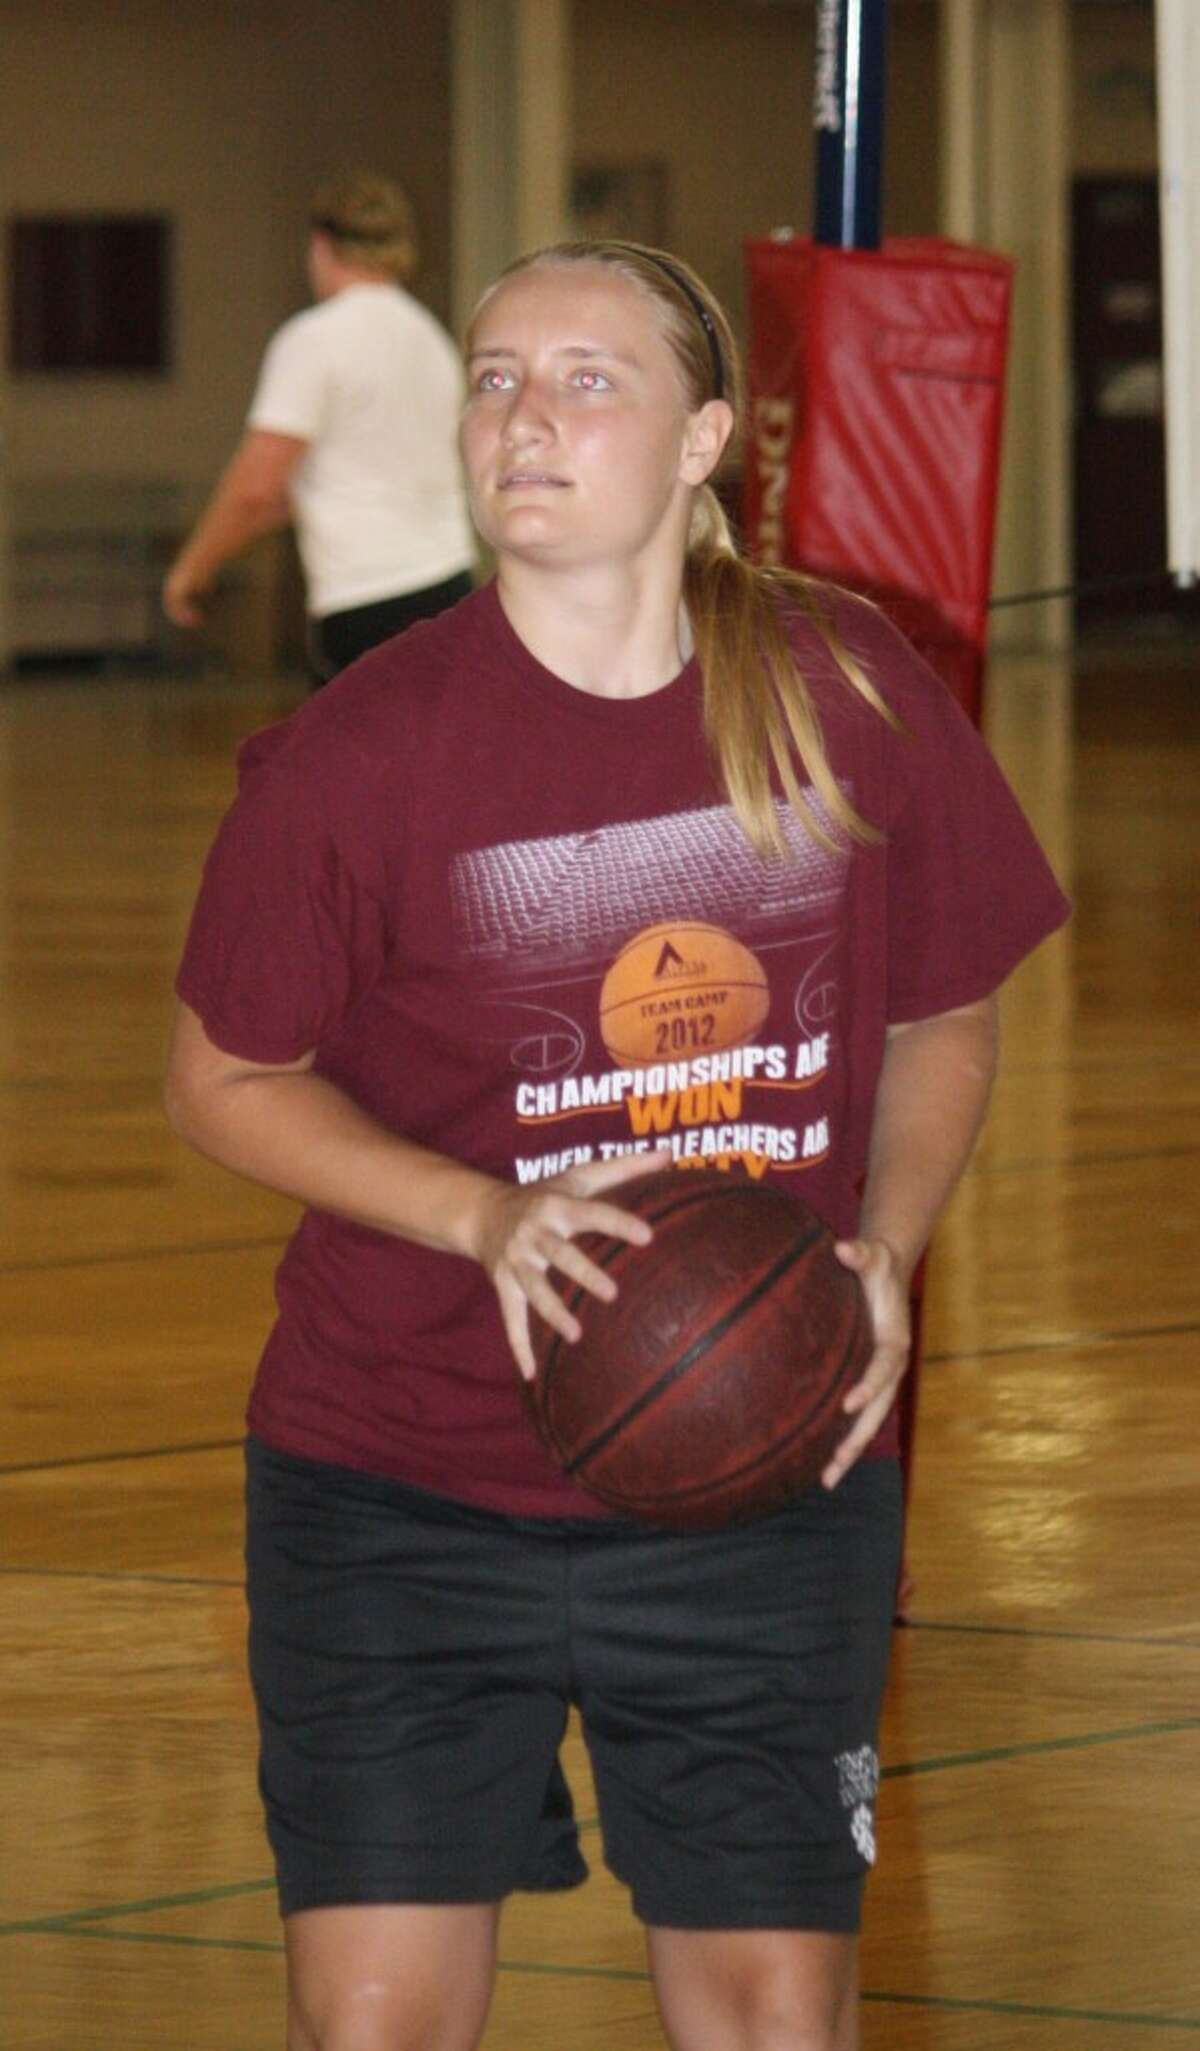 NEXT LEVEL: Courtanee Stieg of Reed City and Alpena Community College, works on her shooting at the Ferris Student Recreational Center.